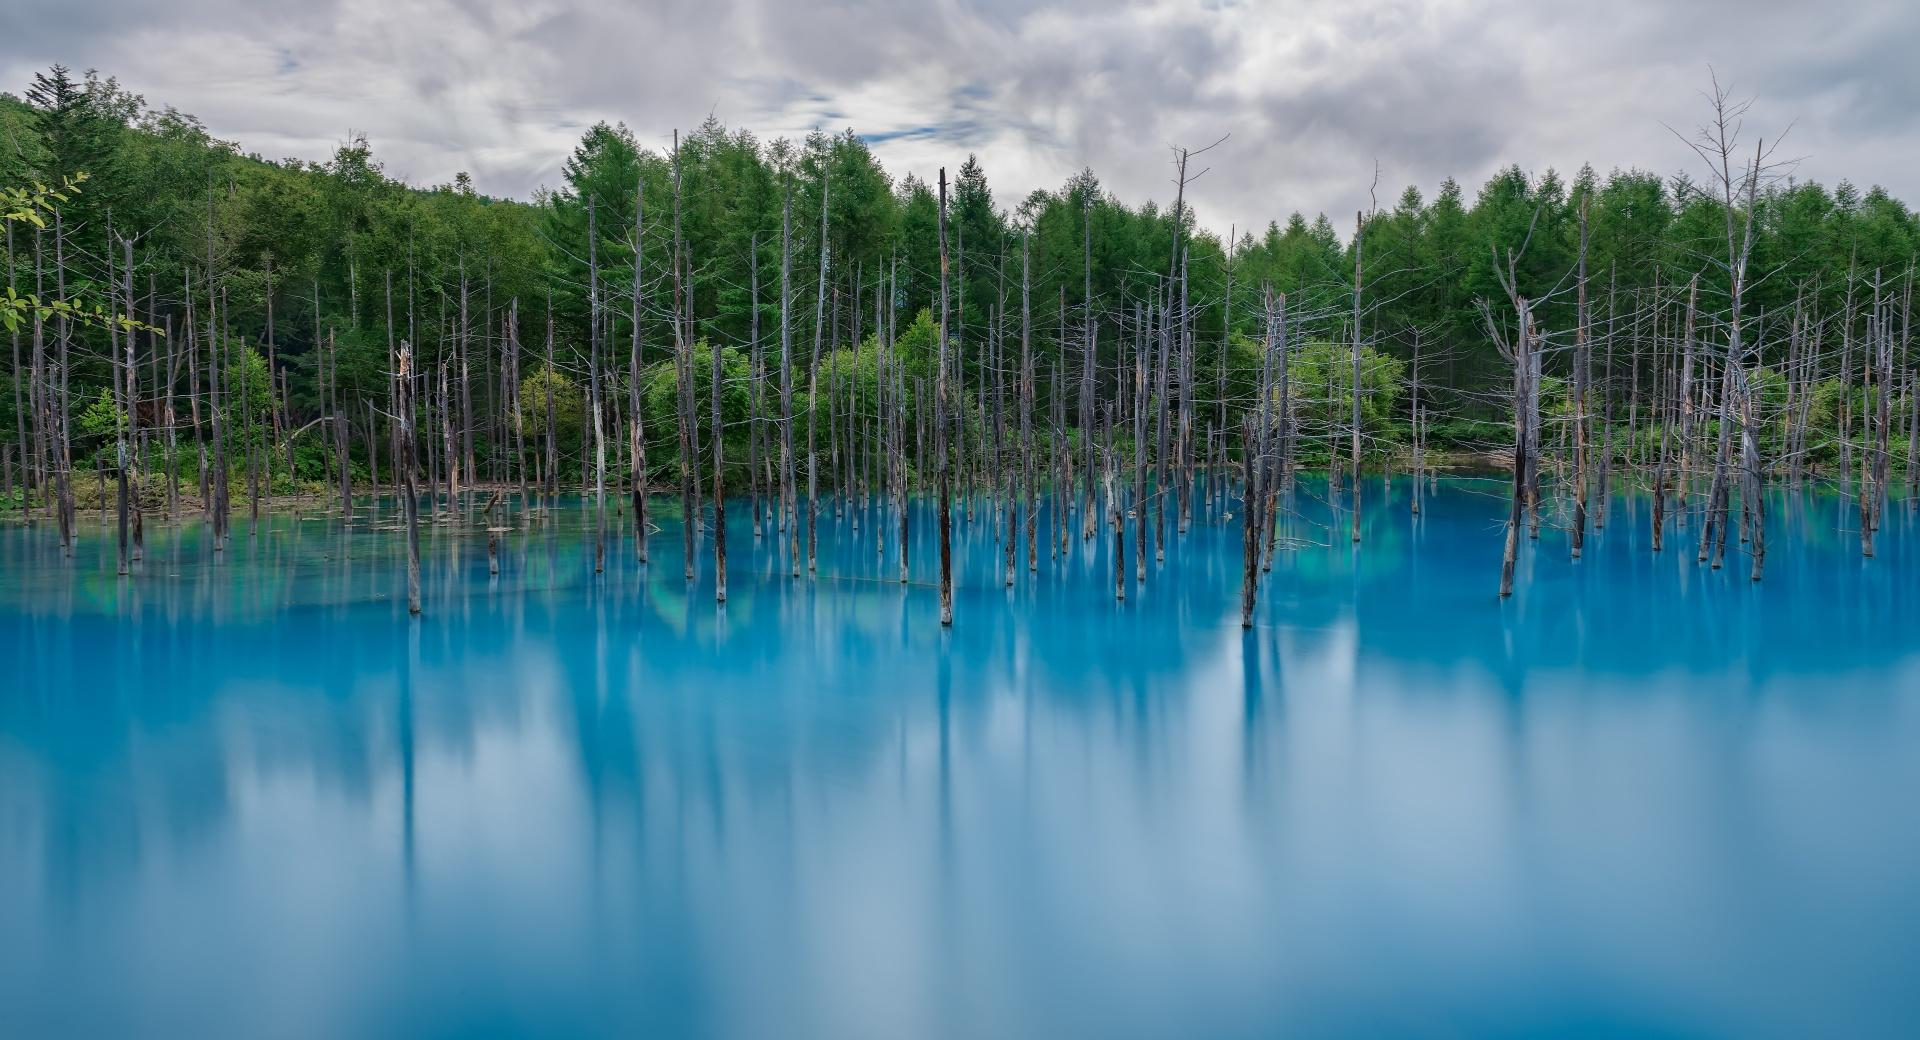 Flooded Forest wallpapers HD quality